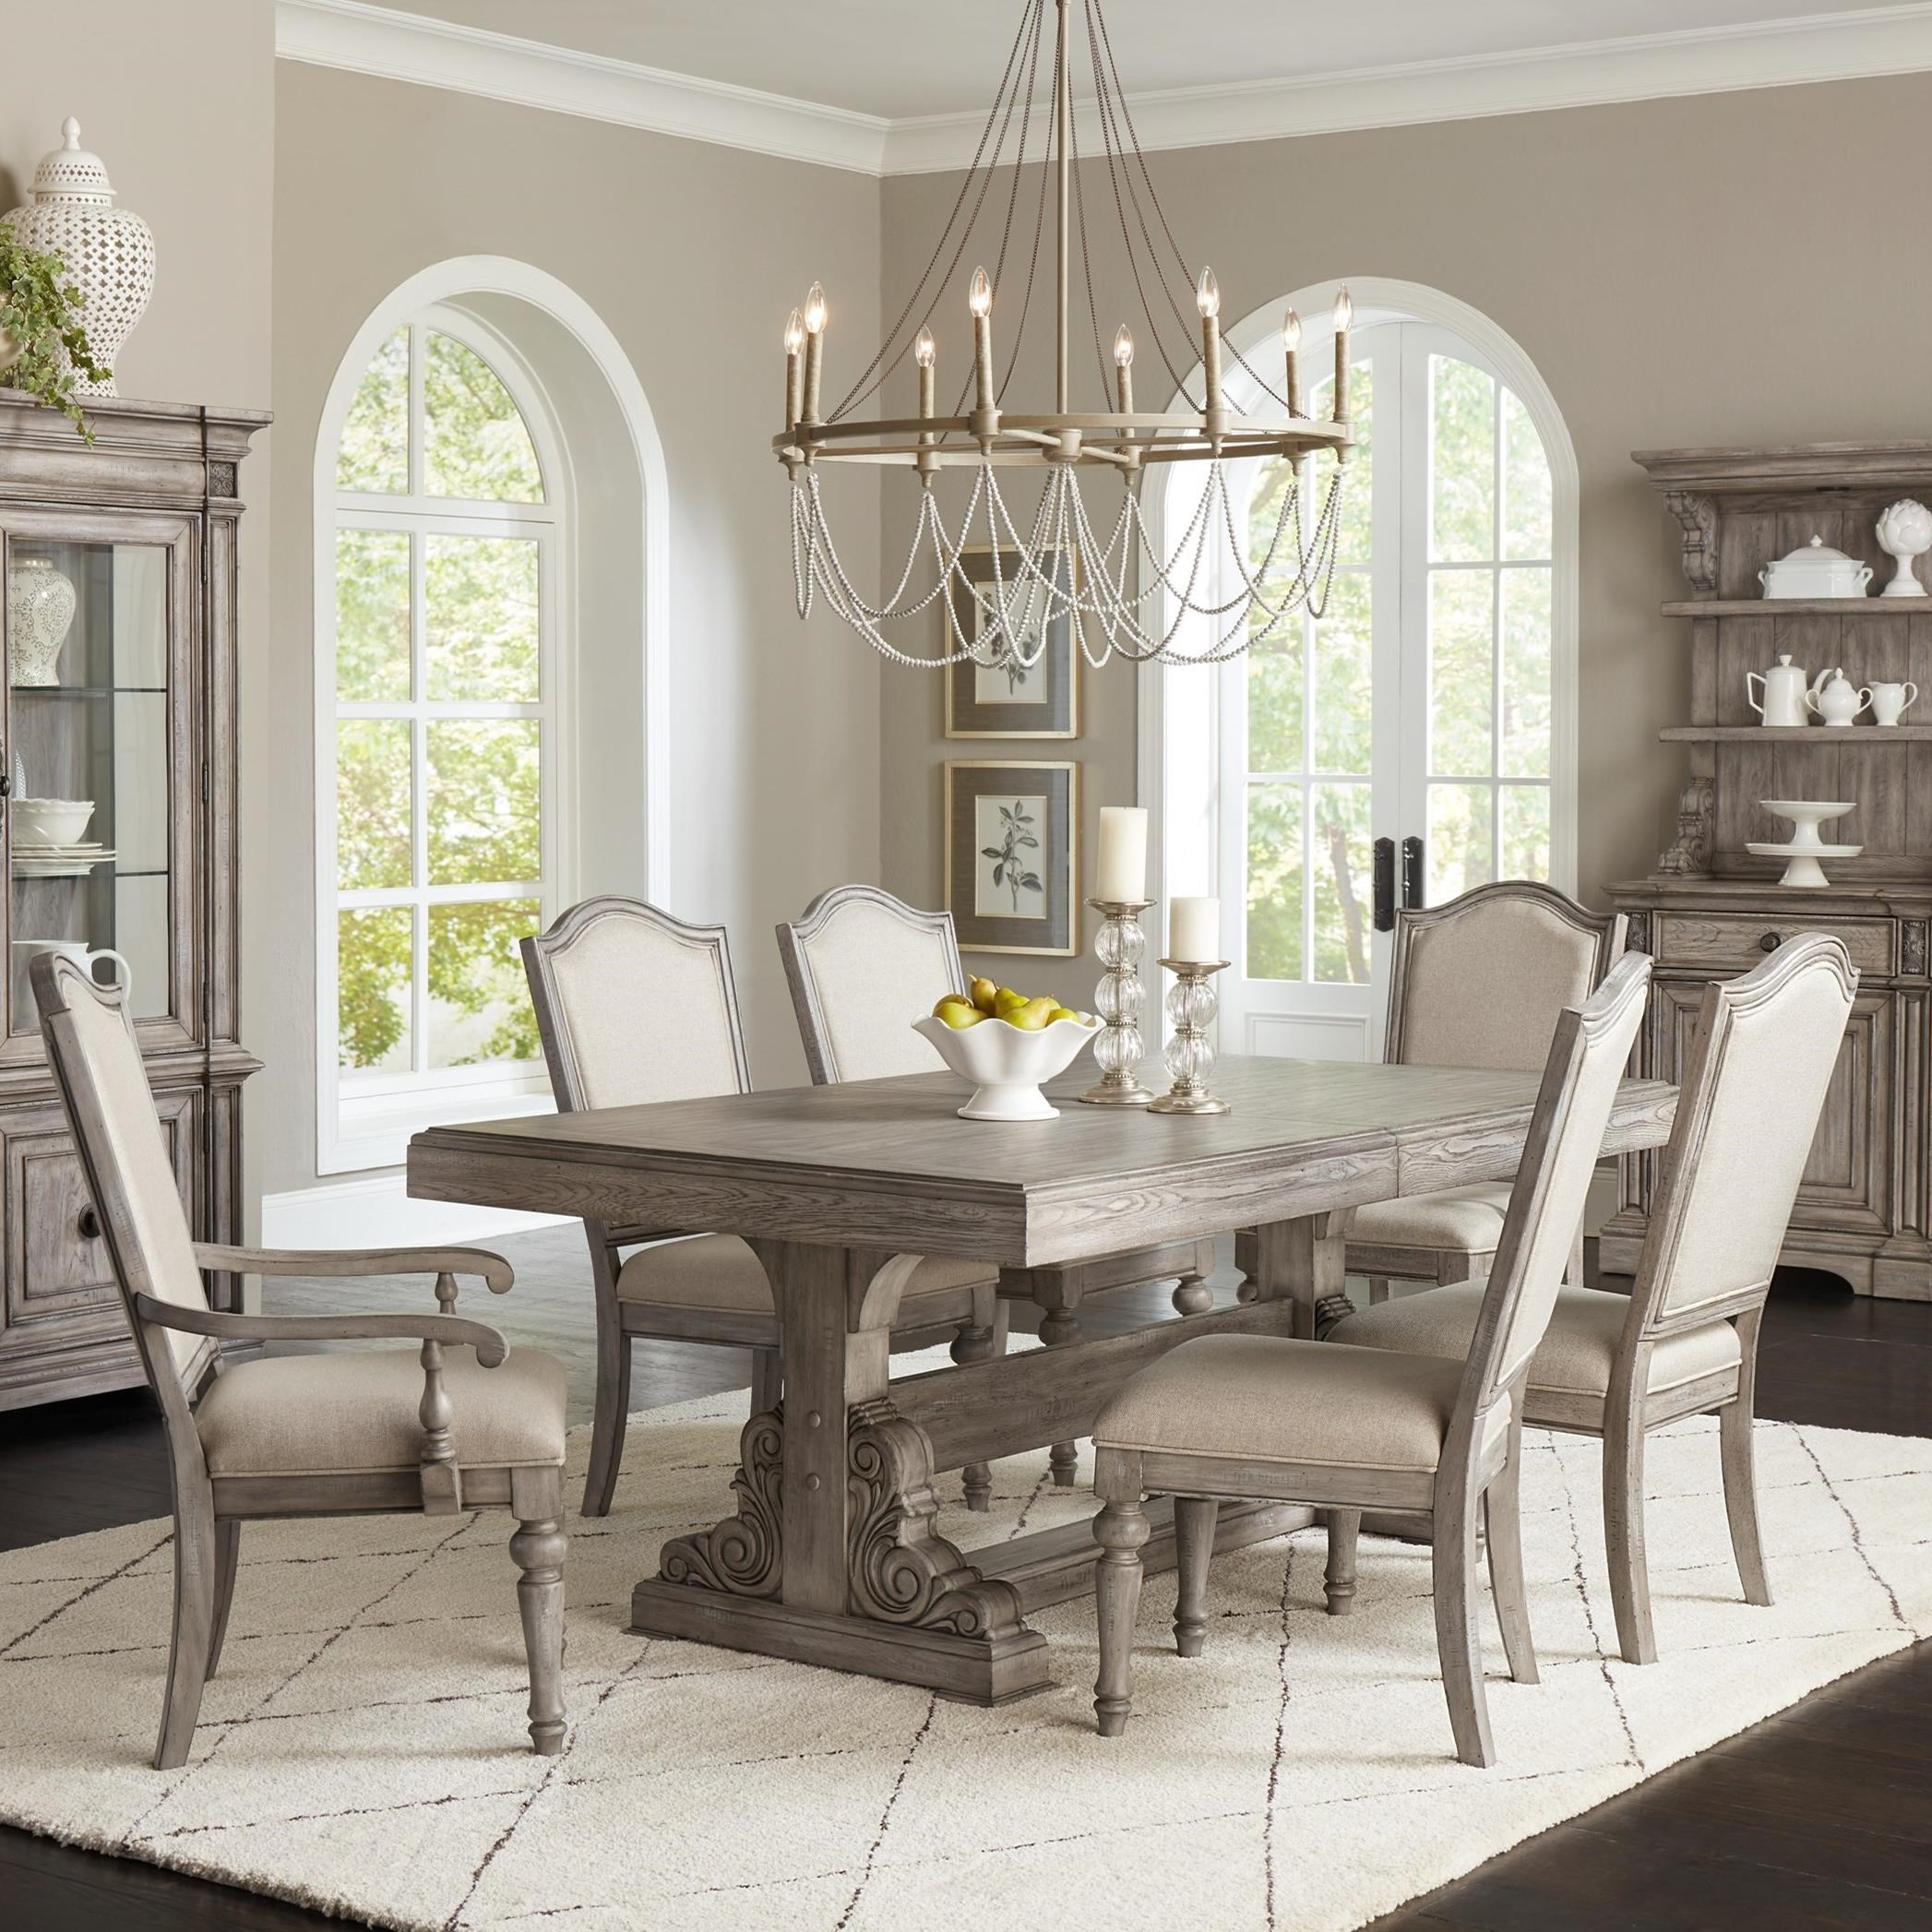 Windmere 9 Piece Table and Chair Set